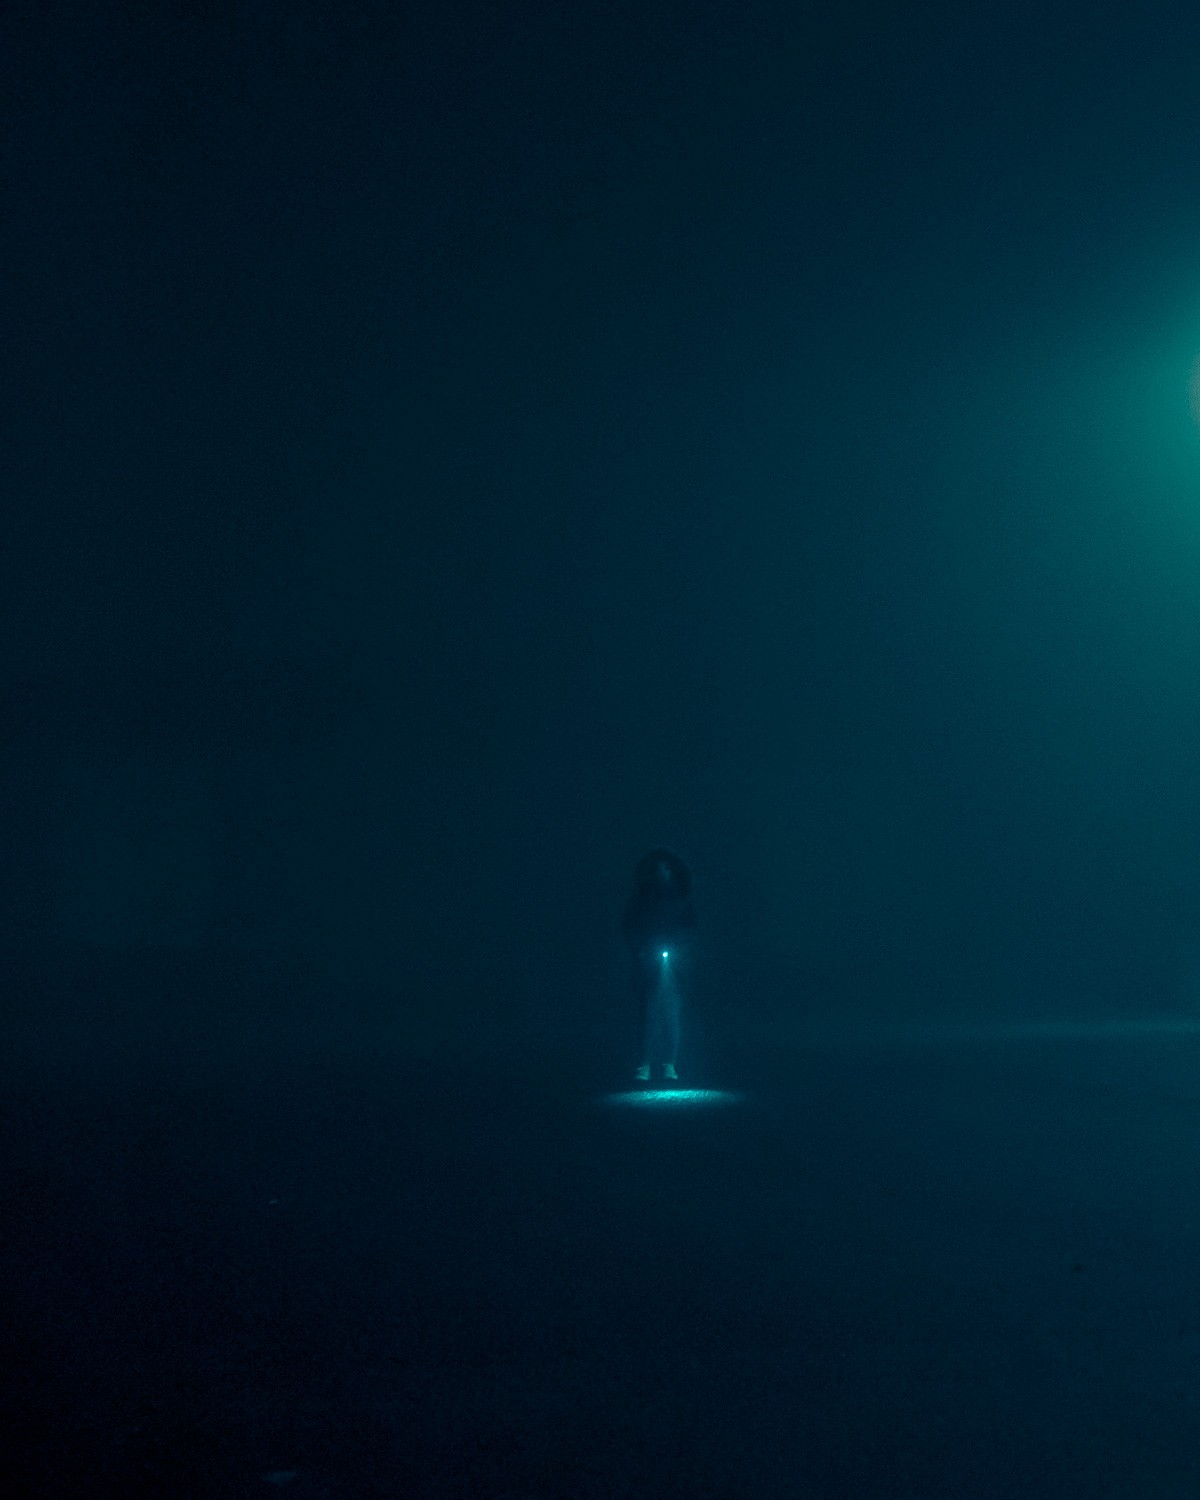 Dystopian Images Explore a Foggy Irish Town Drenched in Aquamarine Light